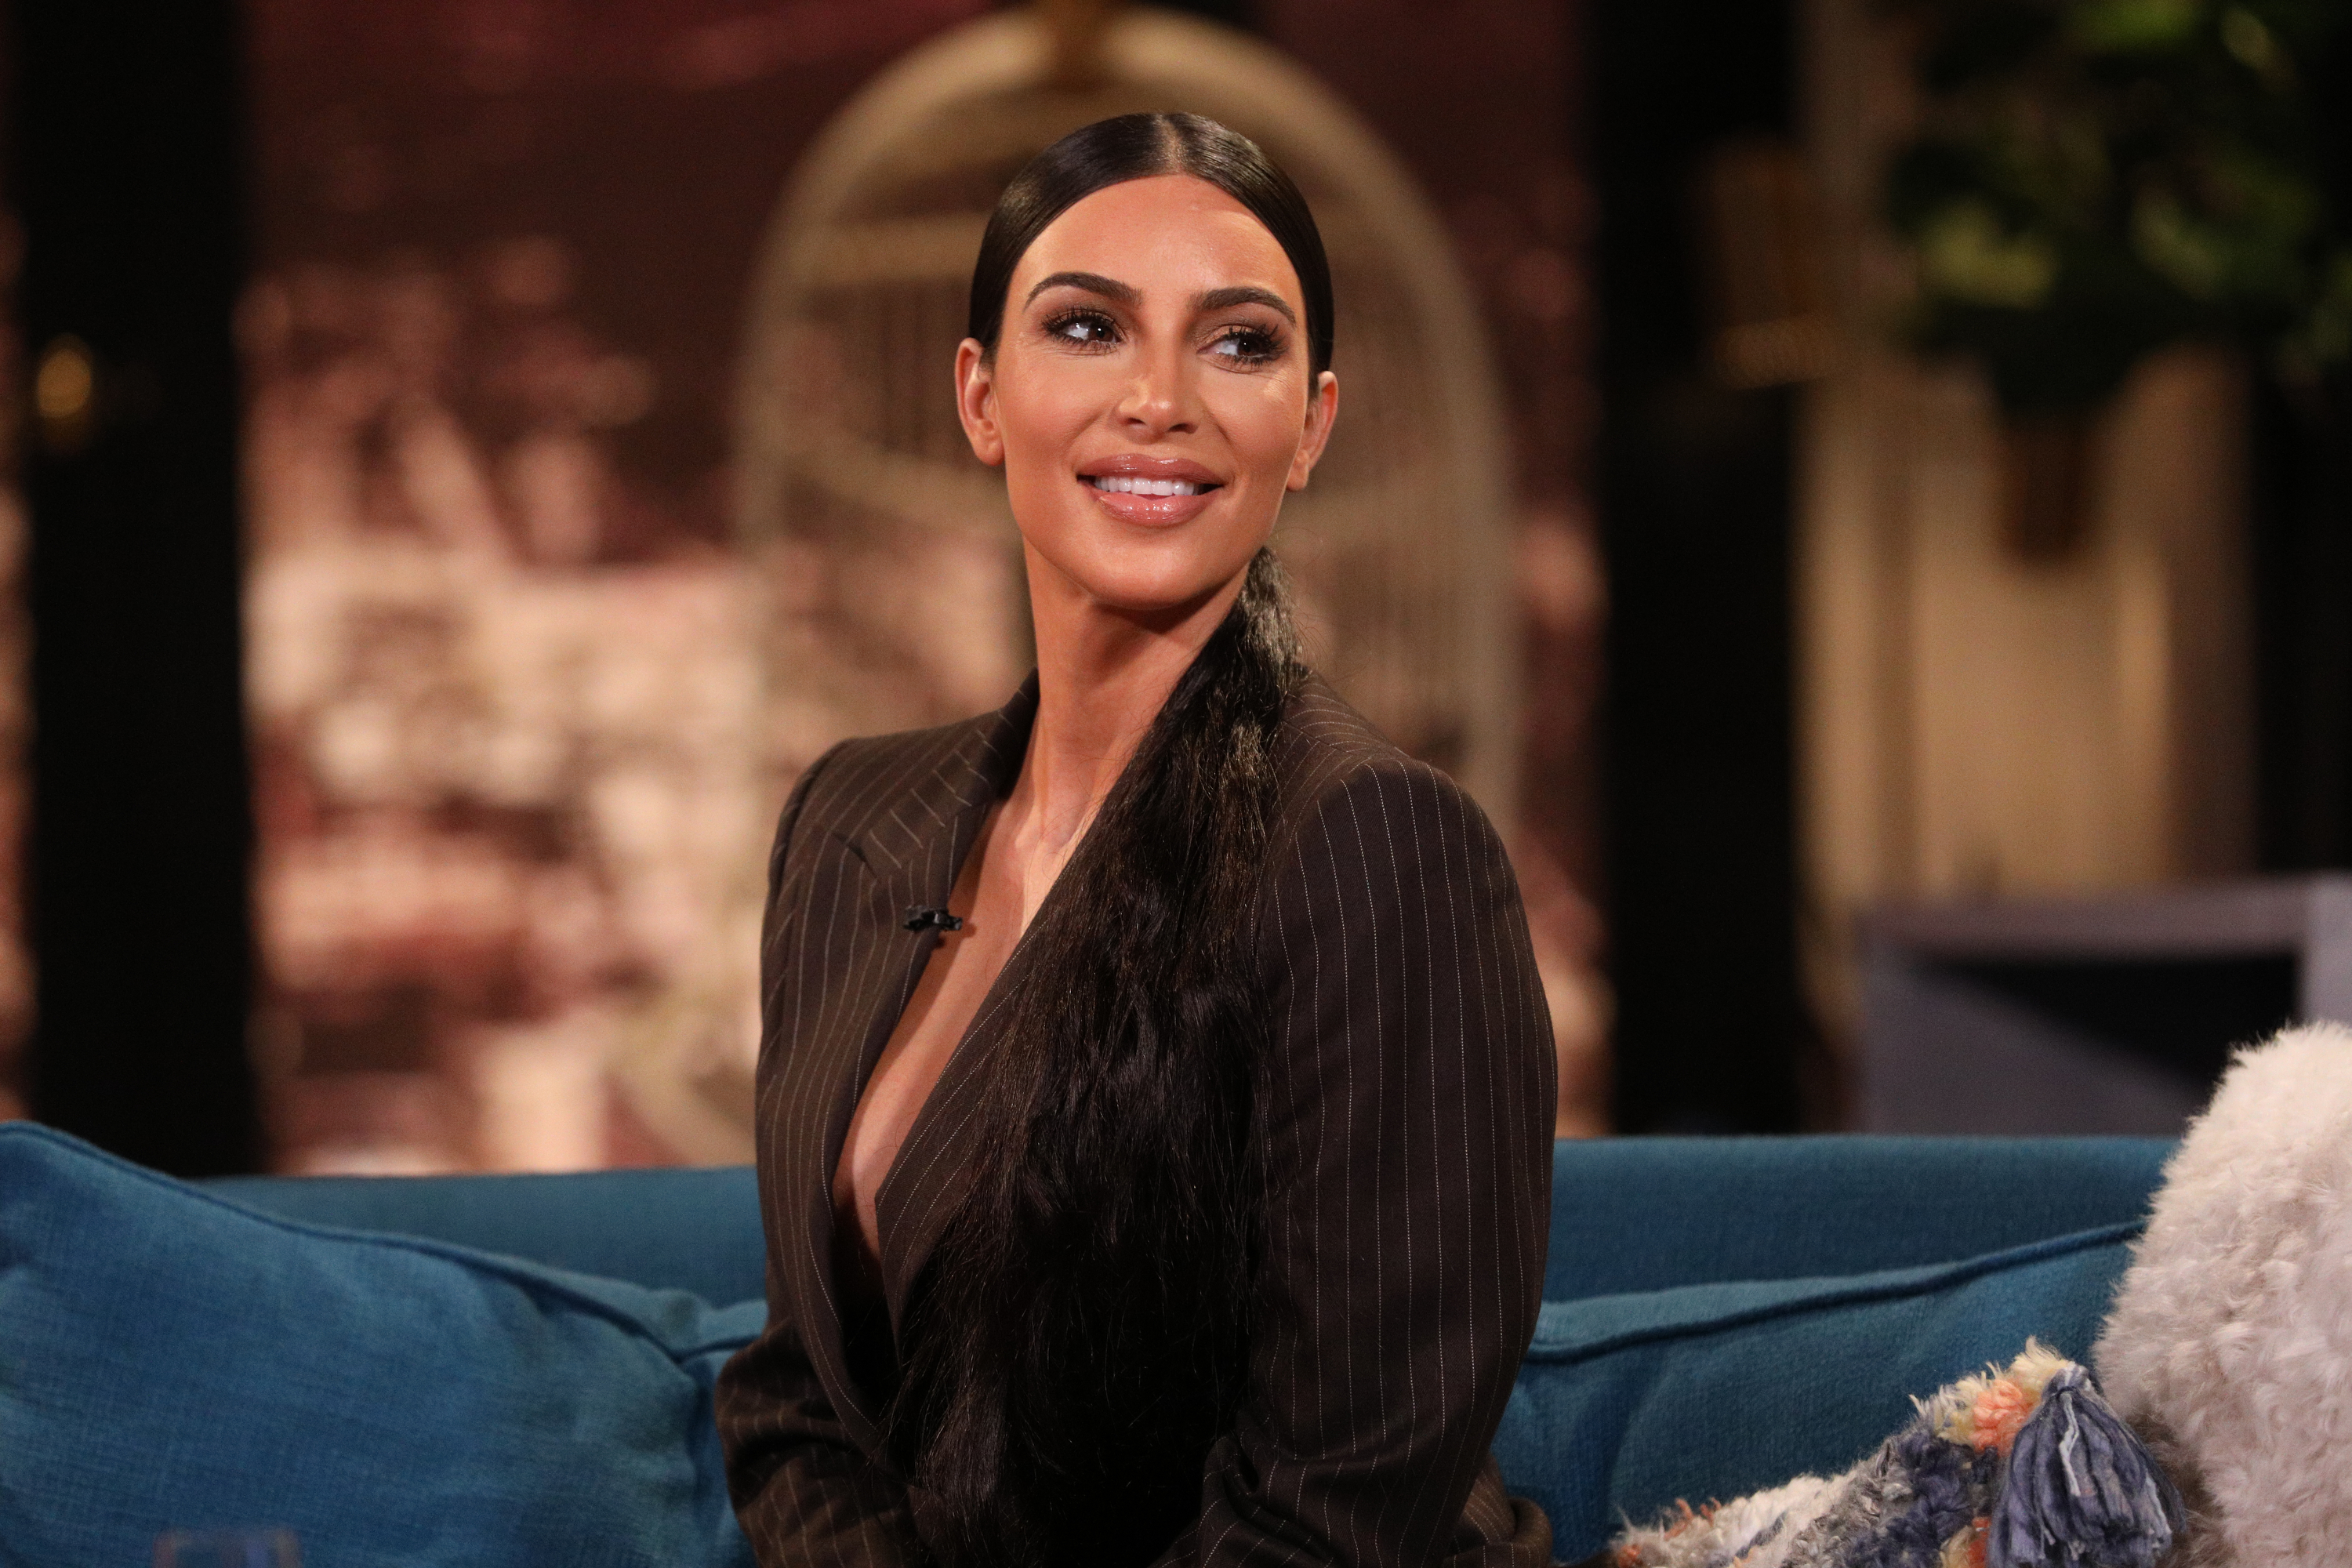 Chicago West Looks Just Like Kim Kardashian in This Beach Vacation Pic